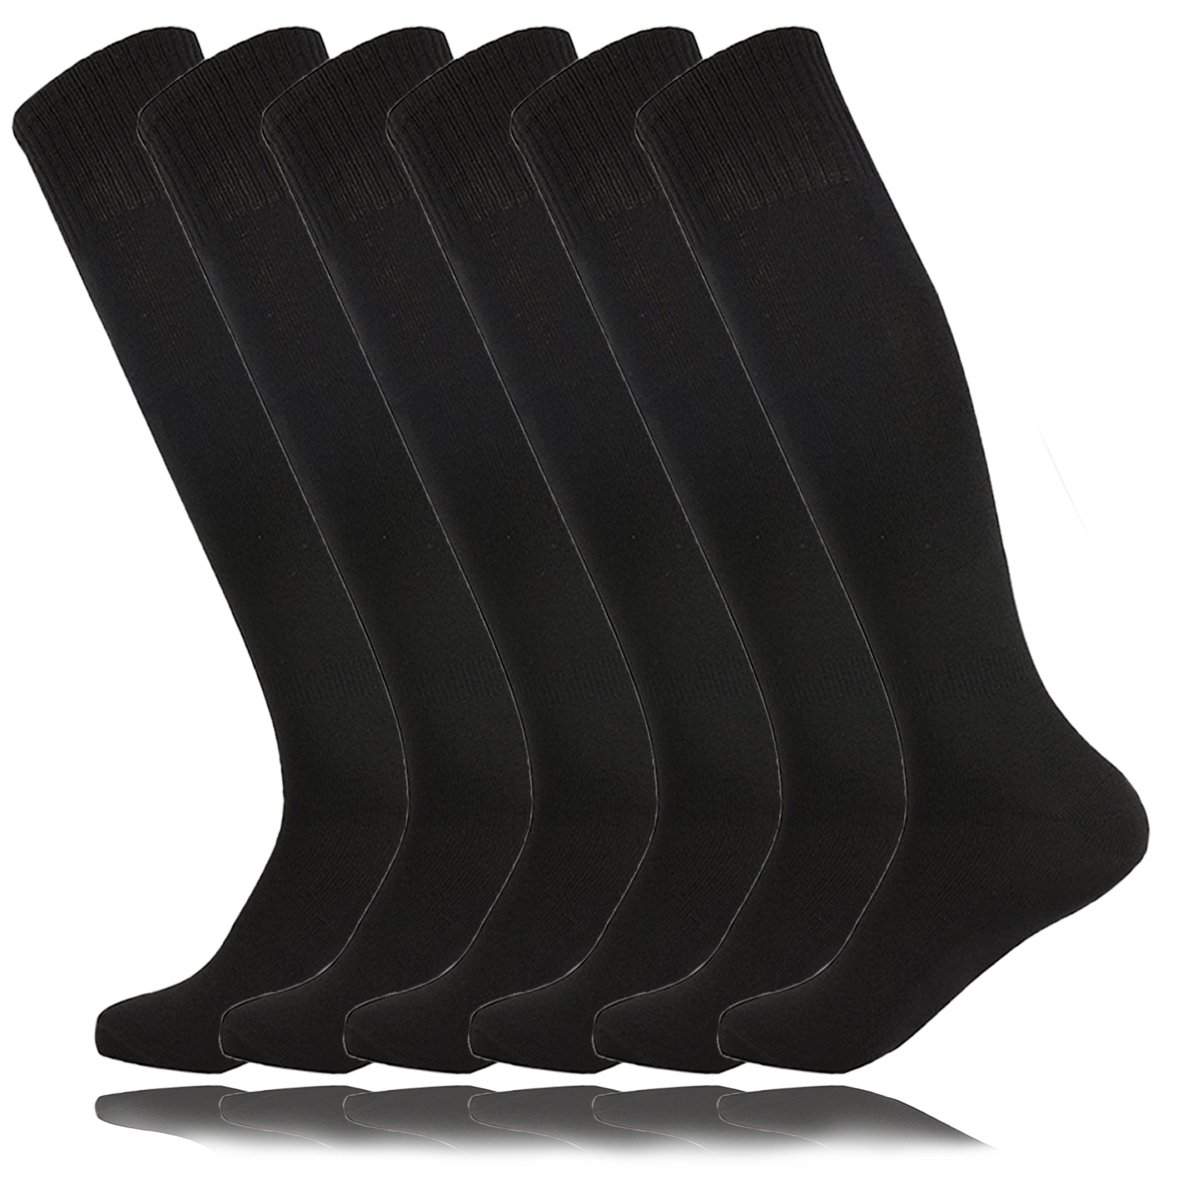 Unisex Youth Knee High Resistor Comfortable Athletic Hockey Soccer Socks Black for High School Students Porristas Baile Easter Day Gift (6Pairs-Black) by MOAIR